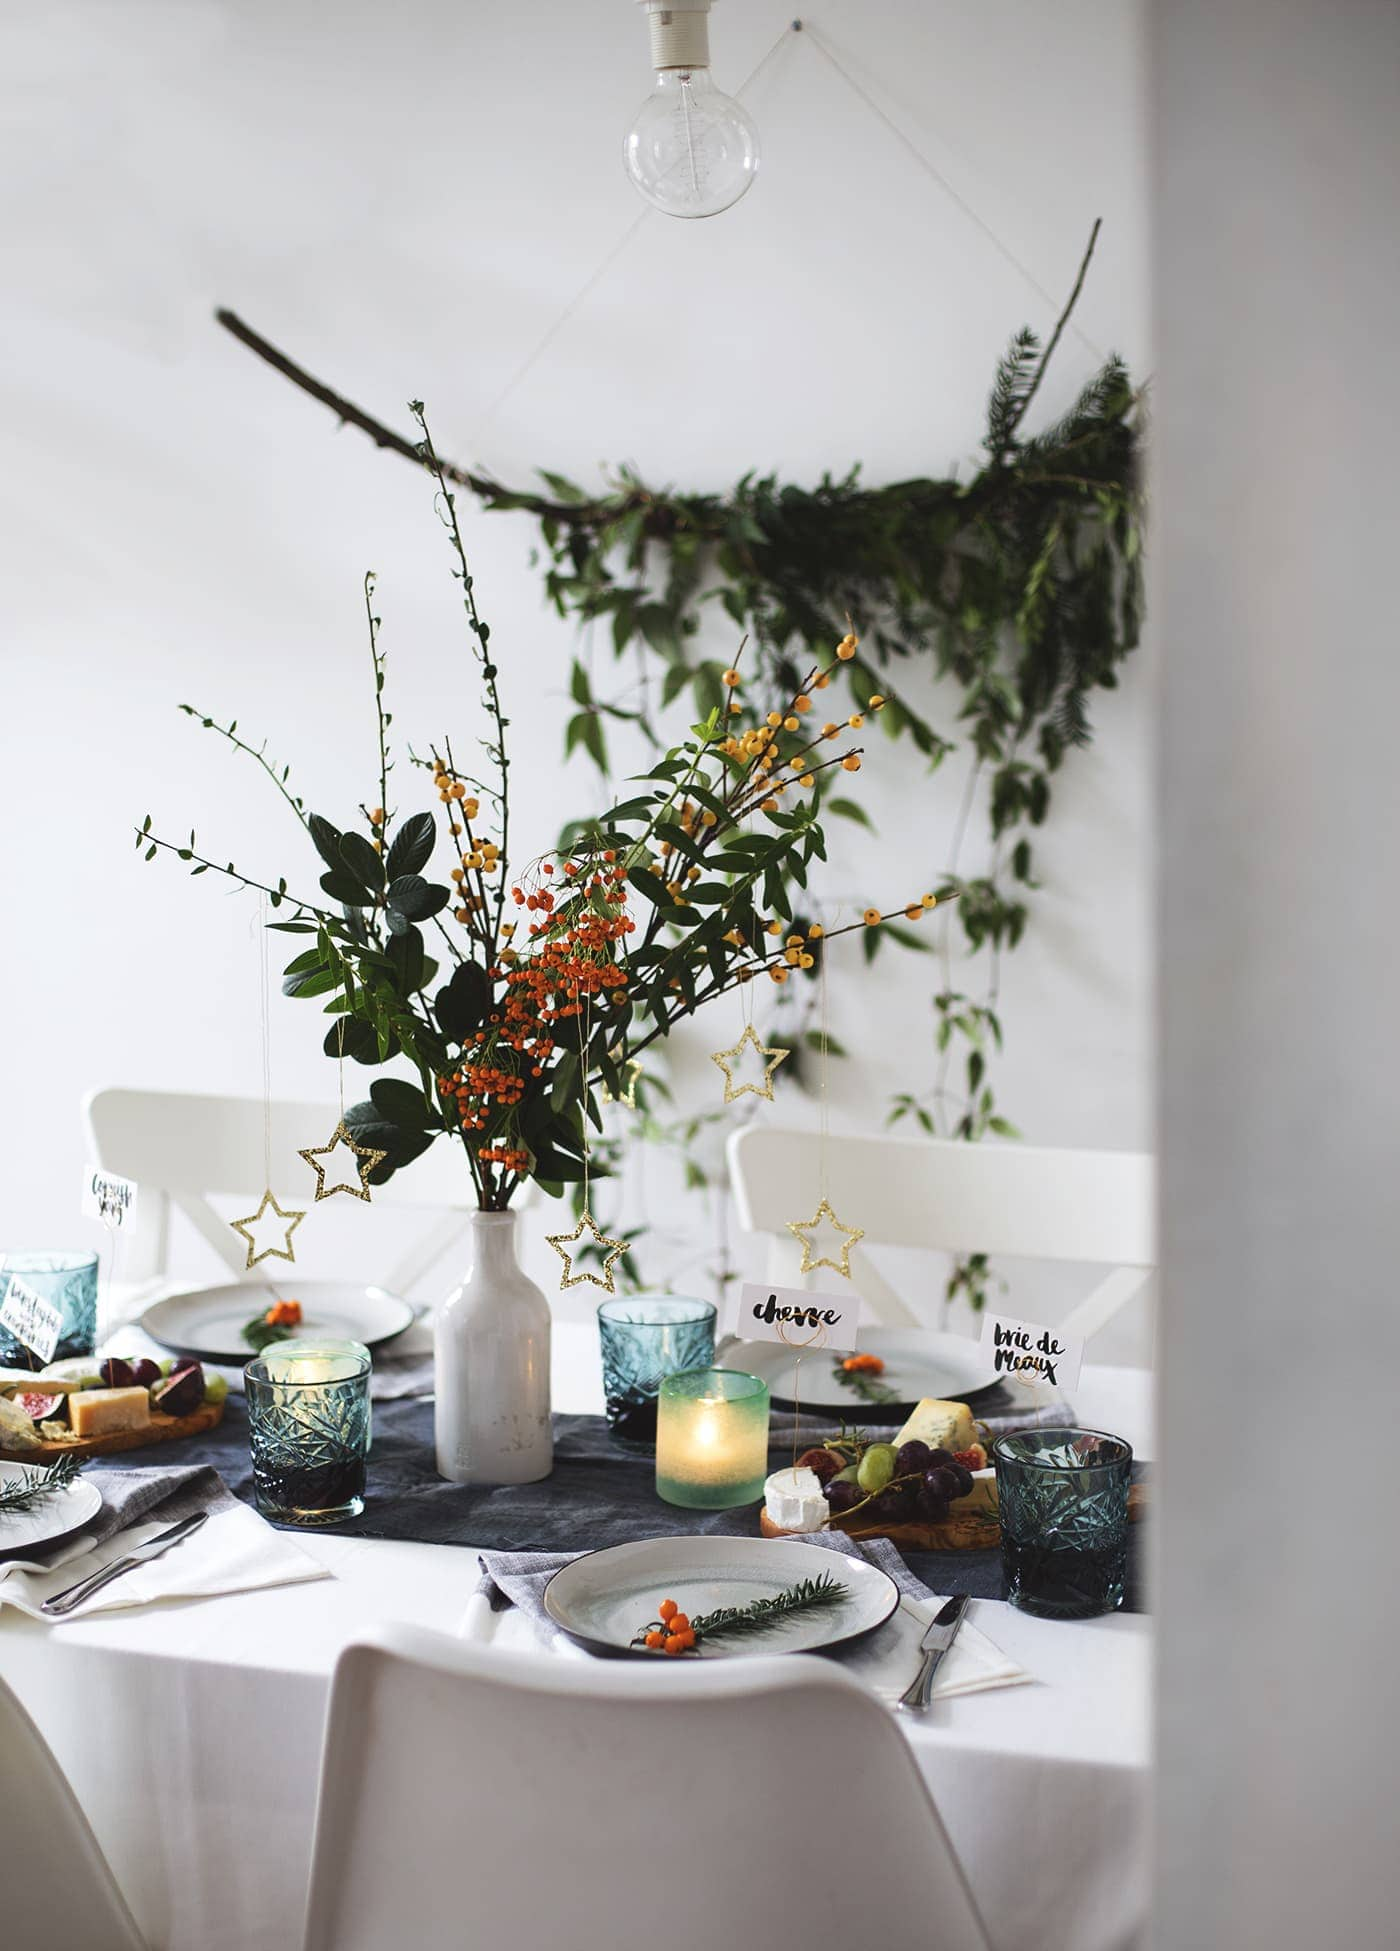 12 styled days of Christmas with West Elm 5